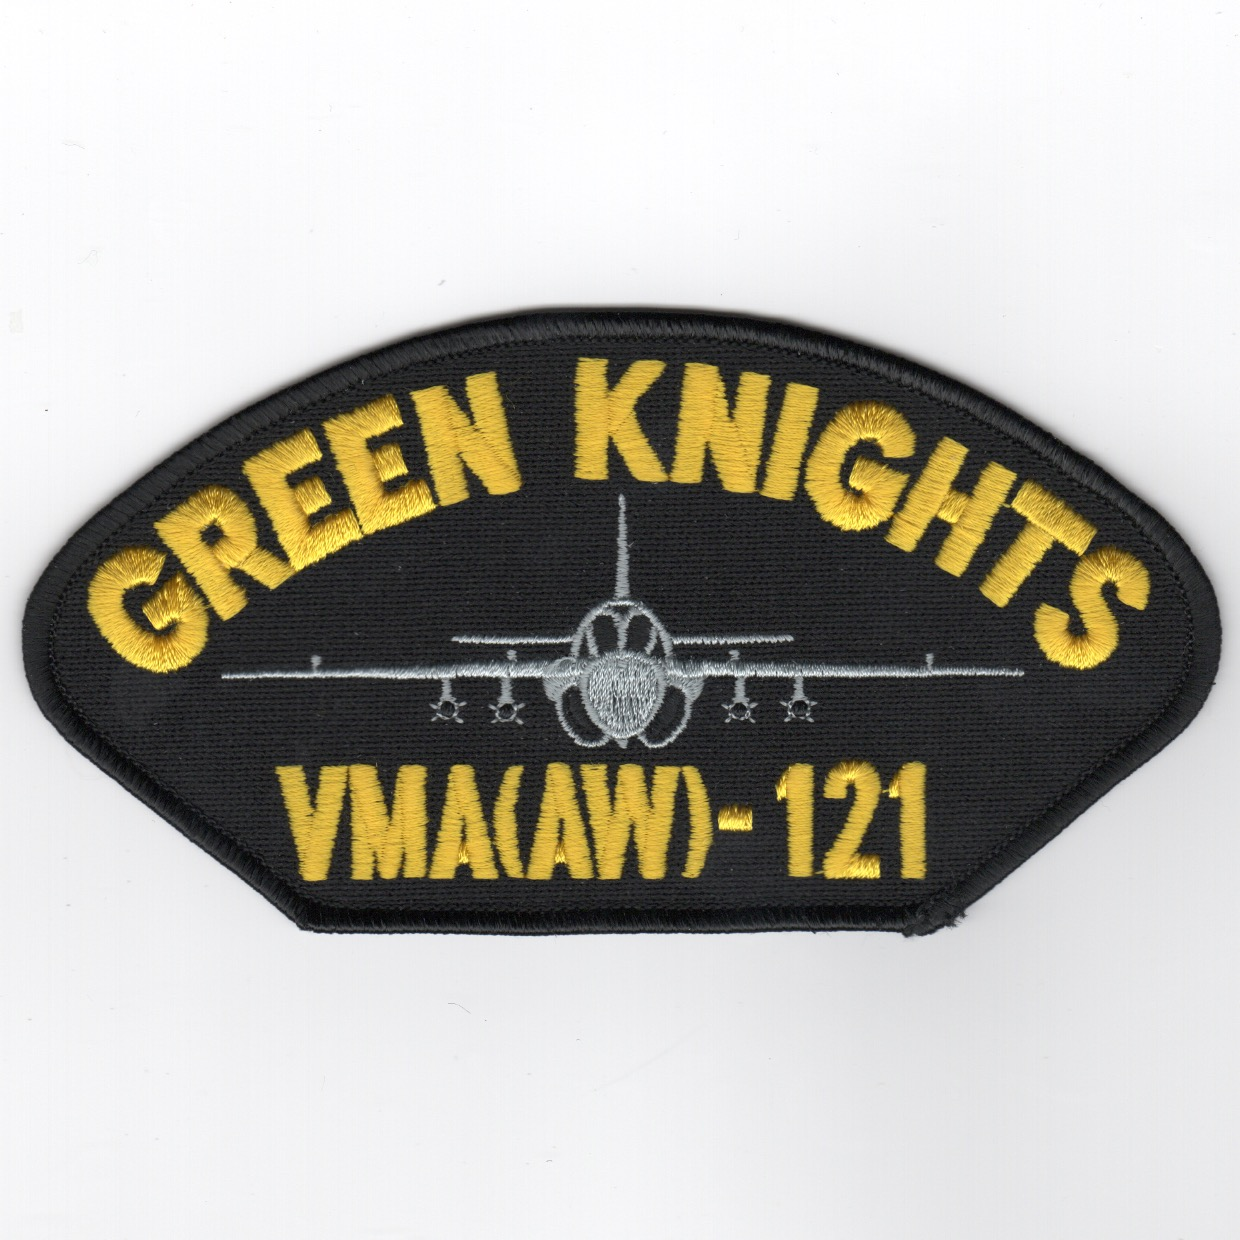 VMA(AW)-121 'Ballcap' Patch